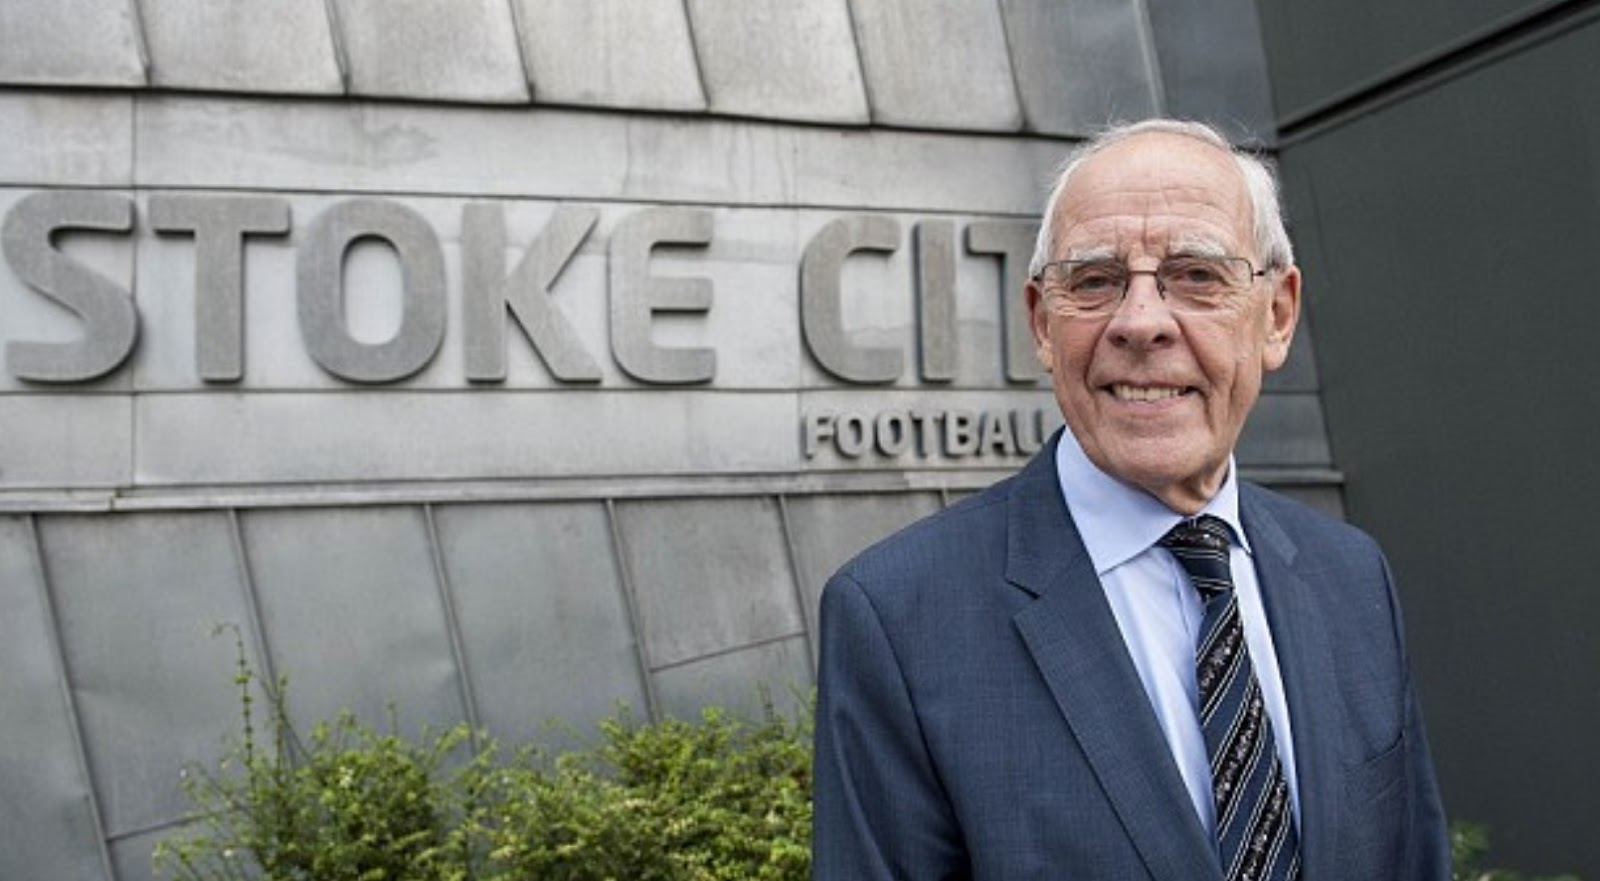 The Coates family invested big money on Stoke